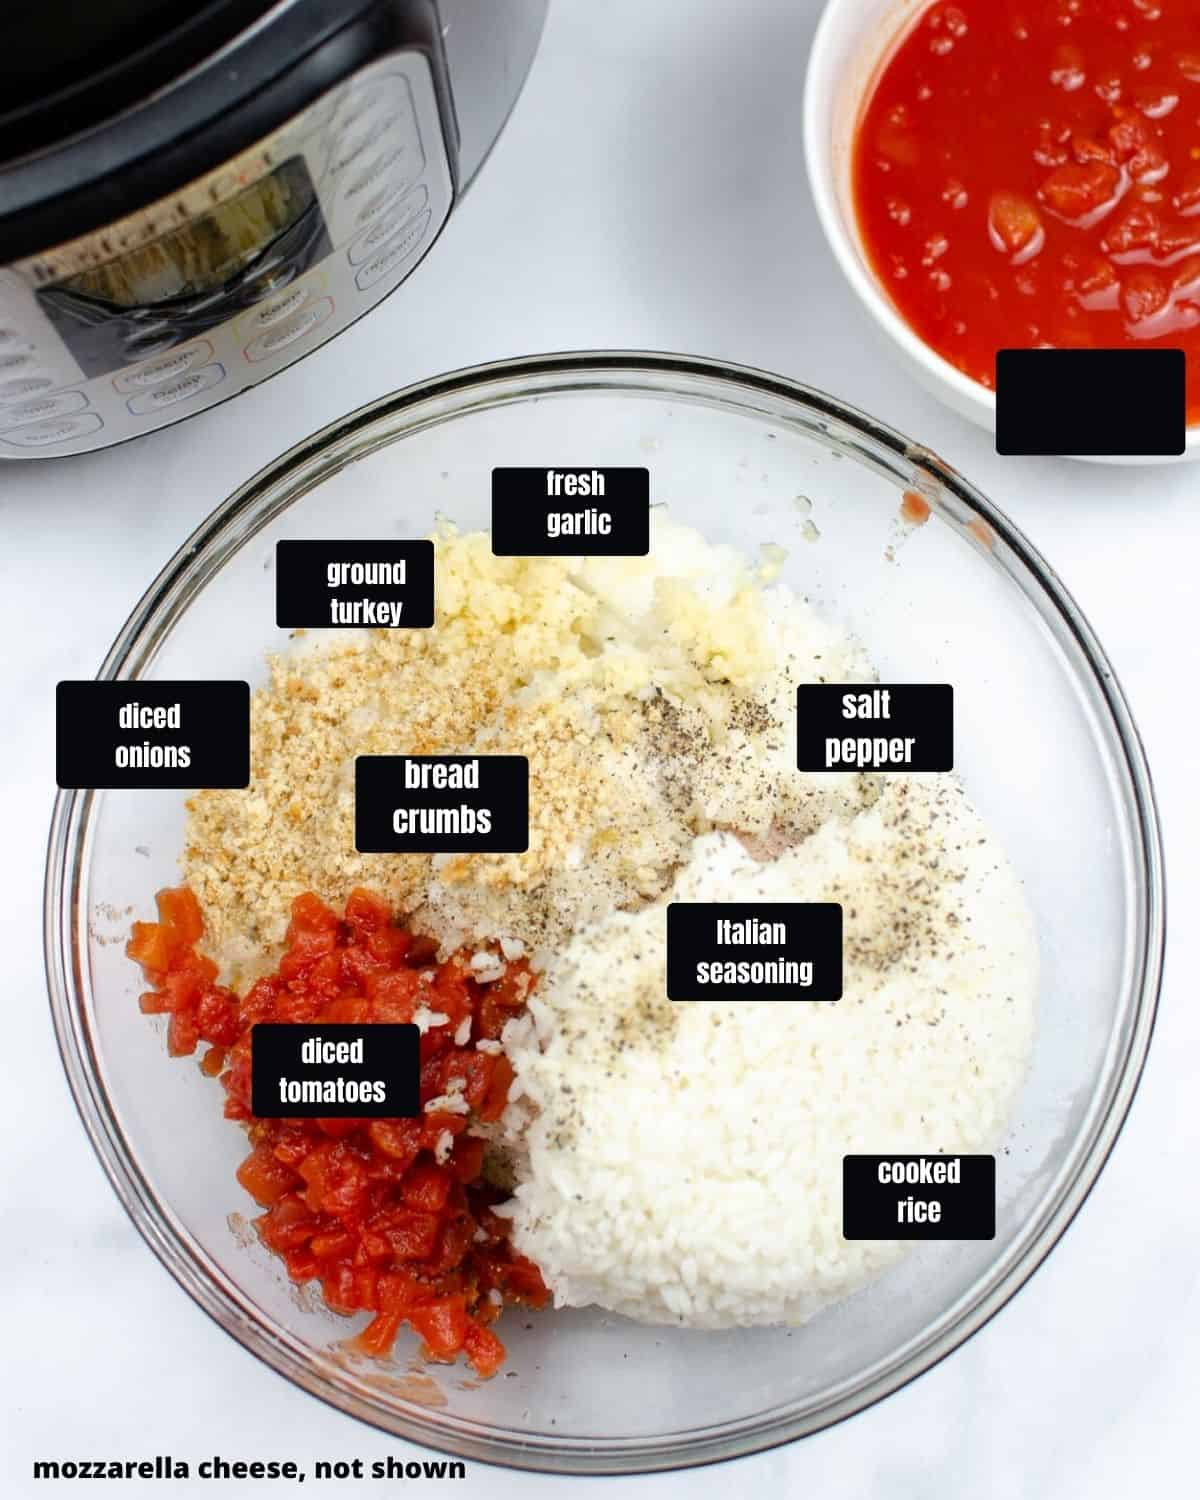 A glass mixing bowl with diced onions, bread crumbs, salt, pepper, Italian seasoning, Rice, garlic and ground turley.